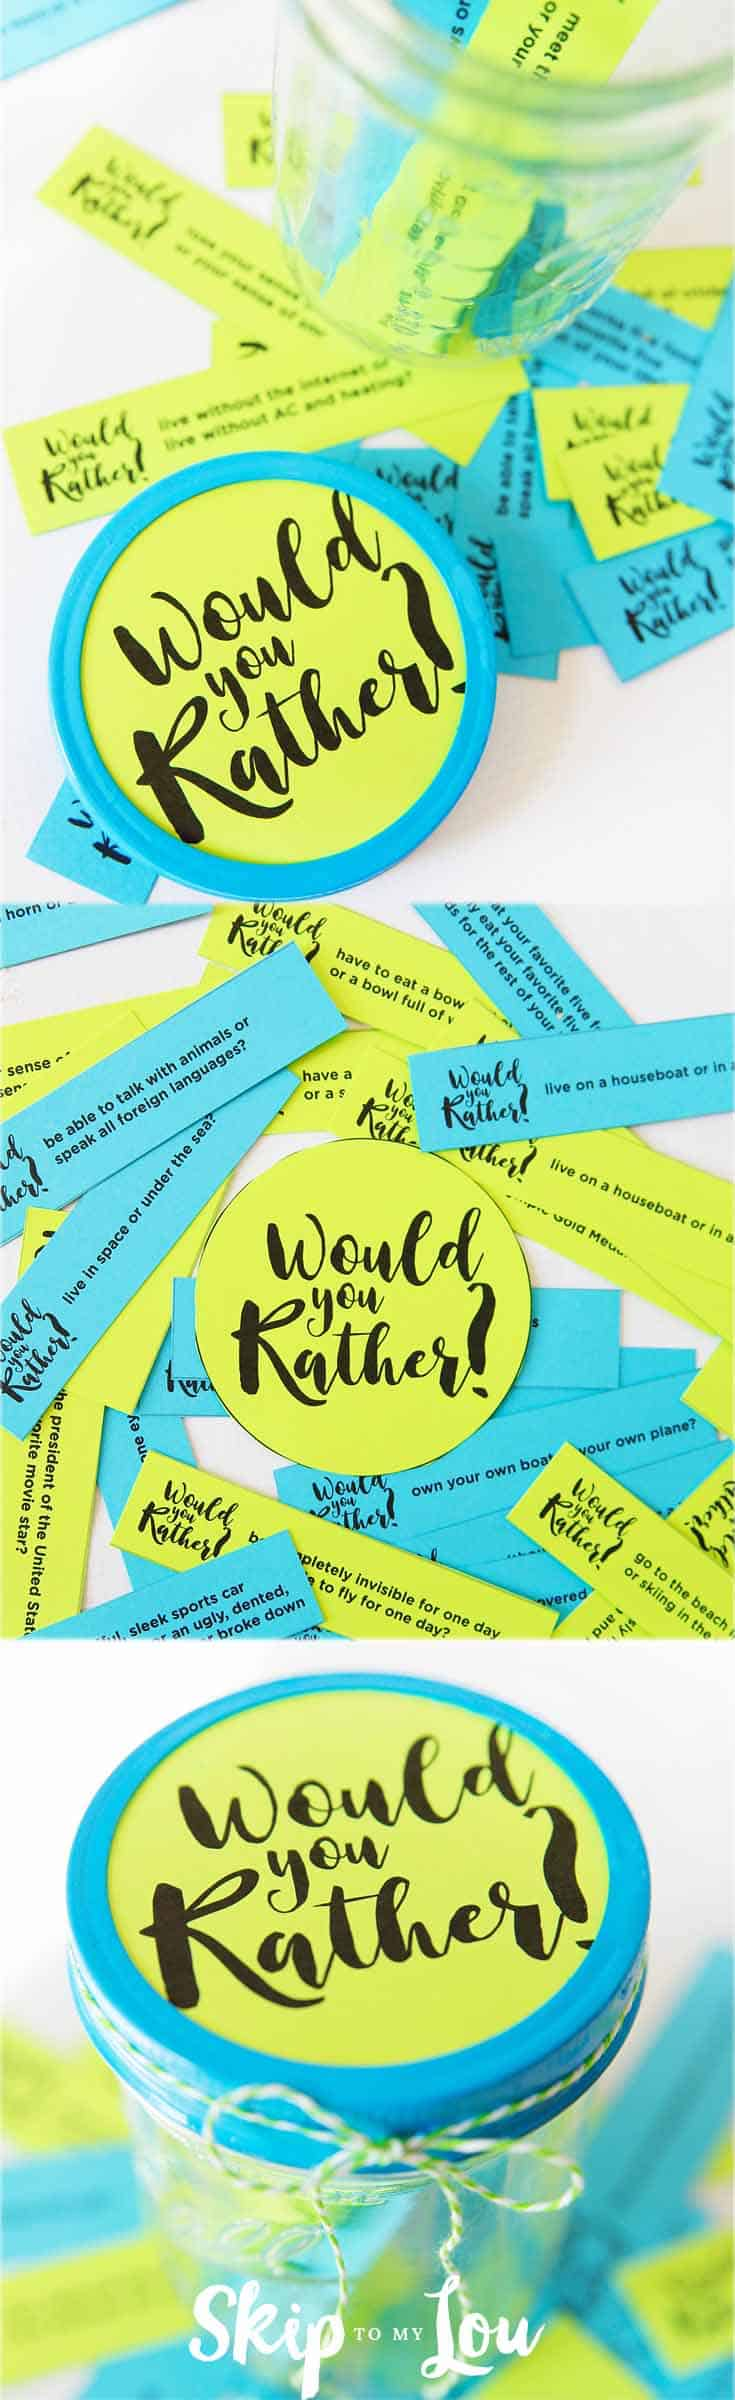 Would you rather questions you are going to love! Have you ever played Would You Rather? It is that fun questions game that poses a dilemma with two equally good, bad or funny options. Some would you rather questions are thought-provoking, while others may be simply silly and just fun to answer. #games #familyfun